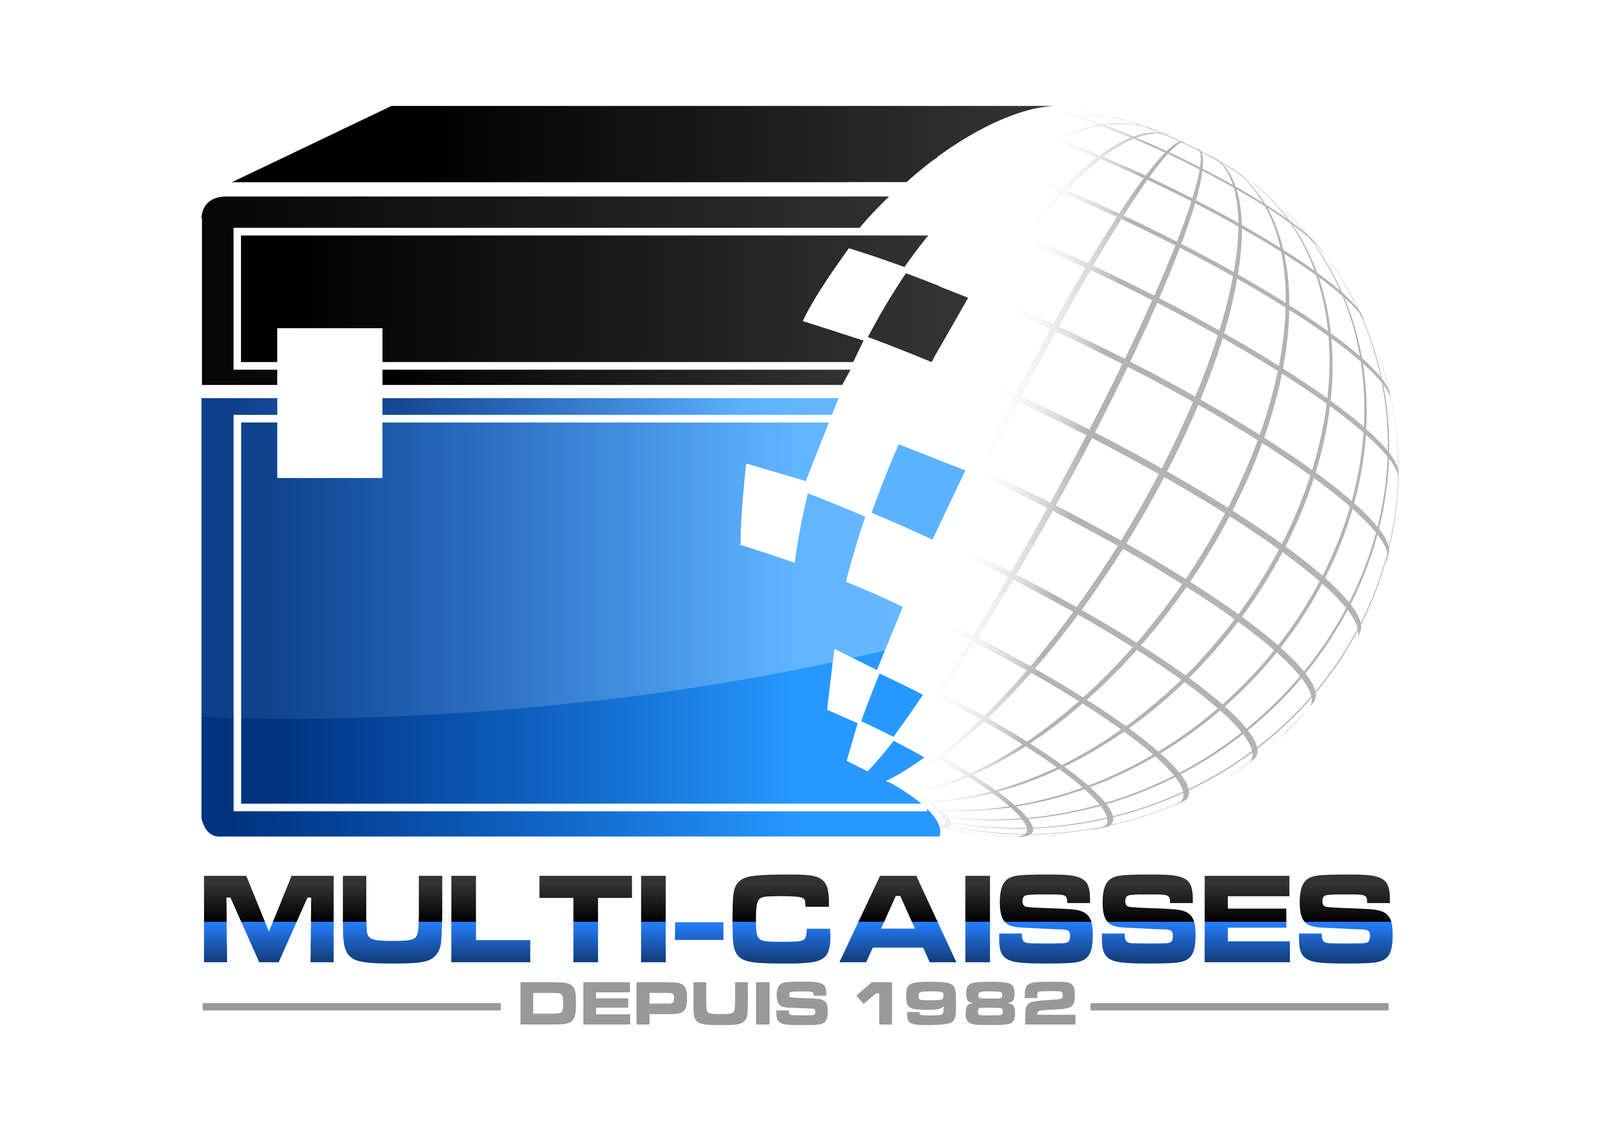 Multi-Caisses-logo_2012_color_fr-01.jpg